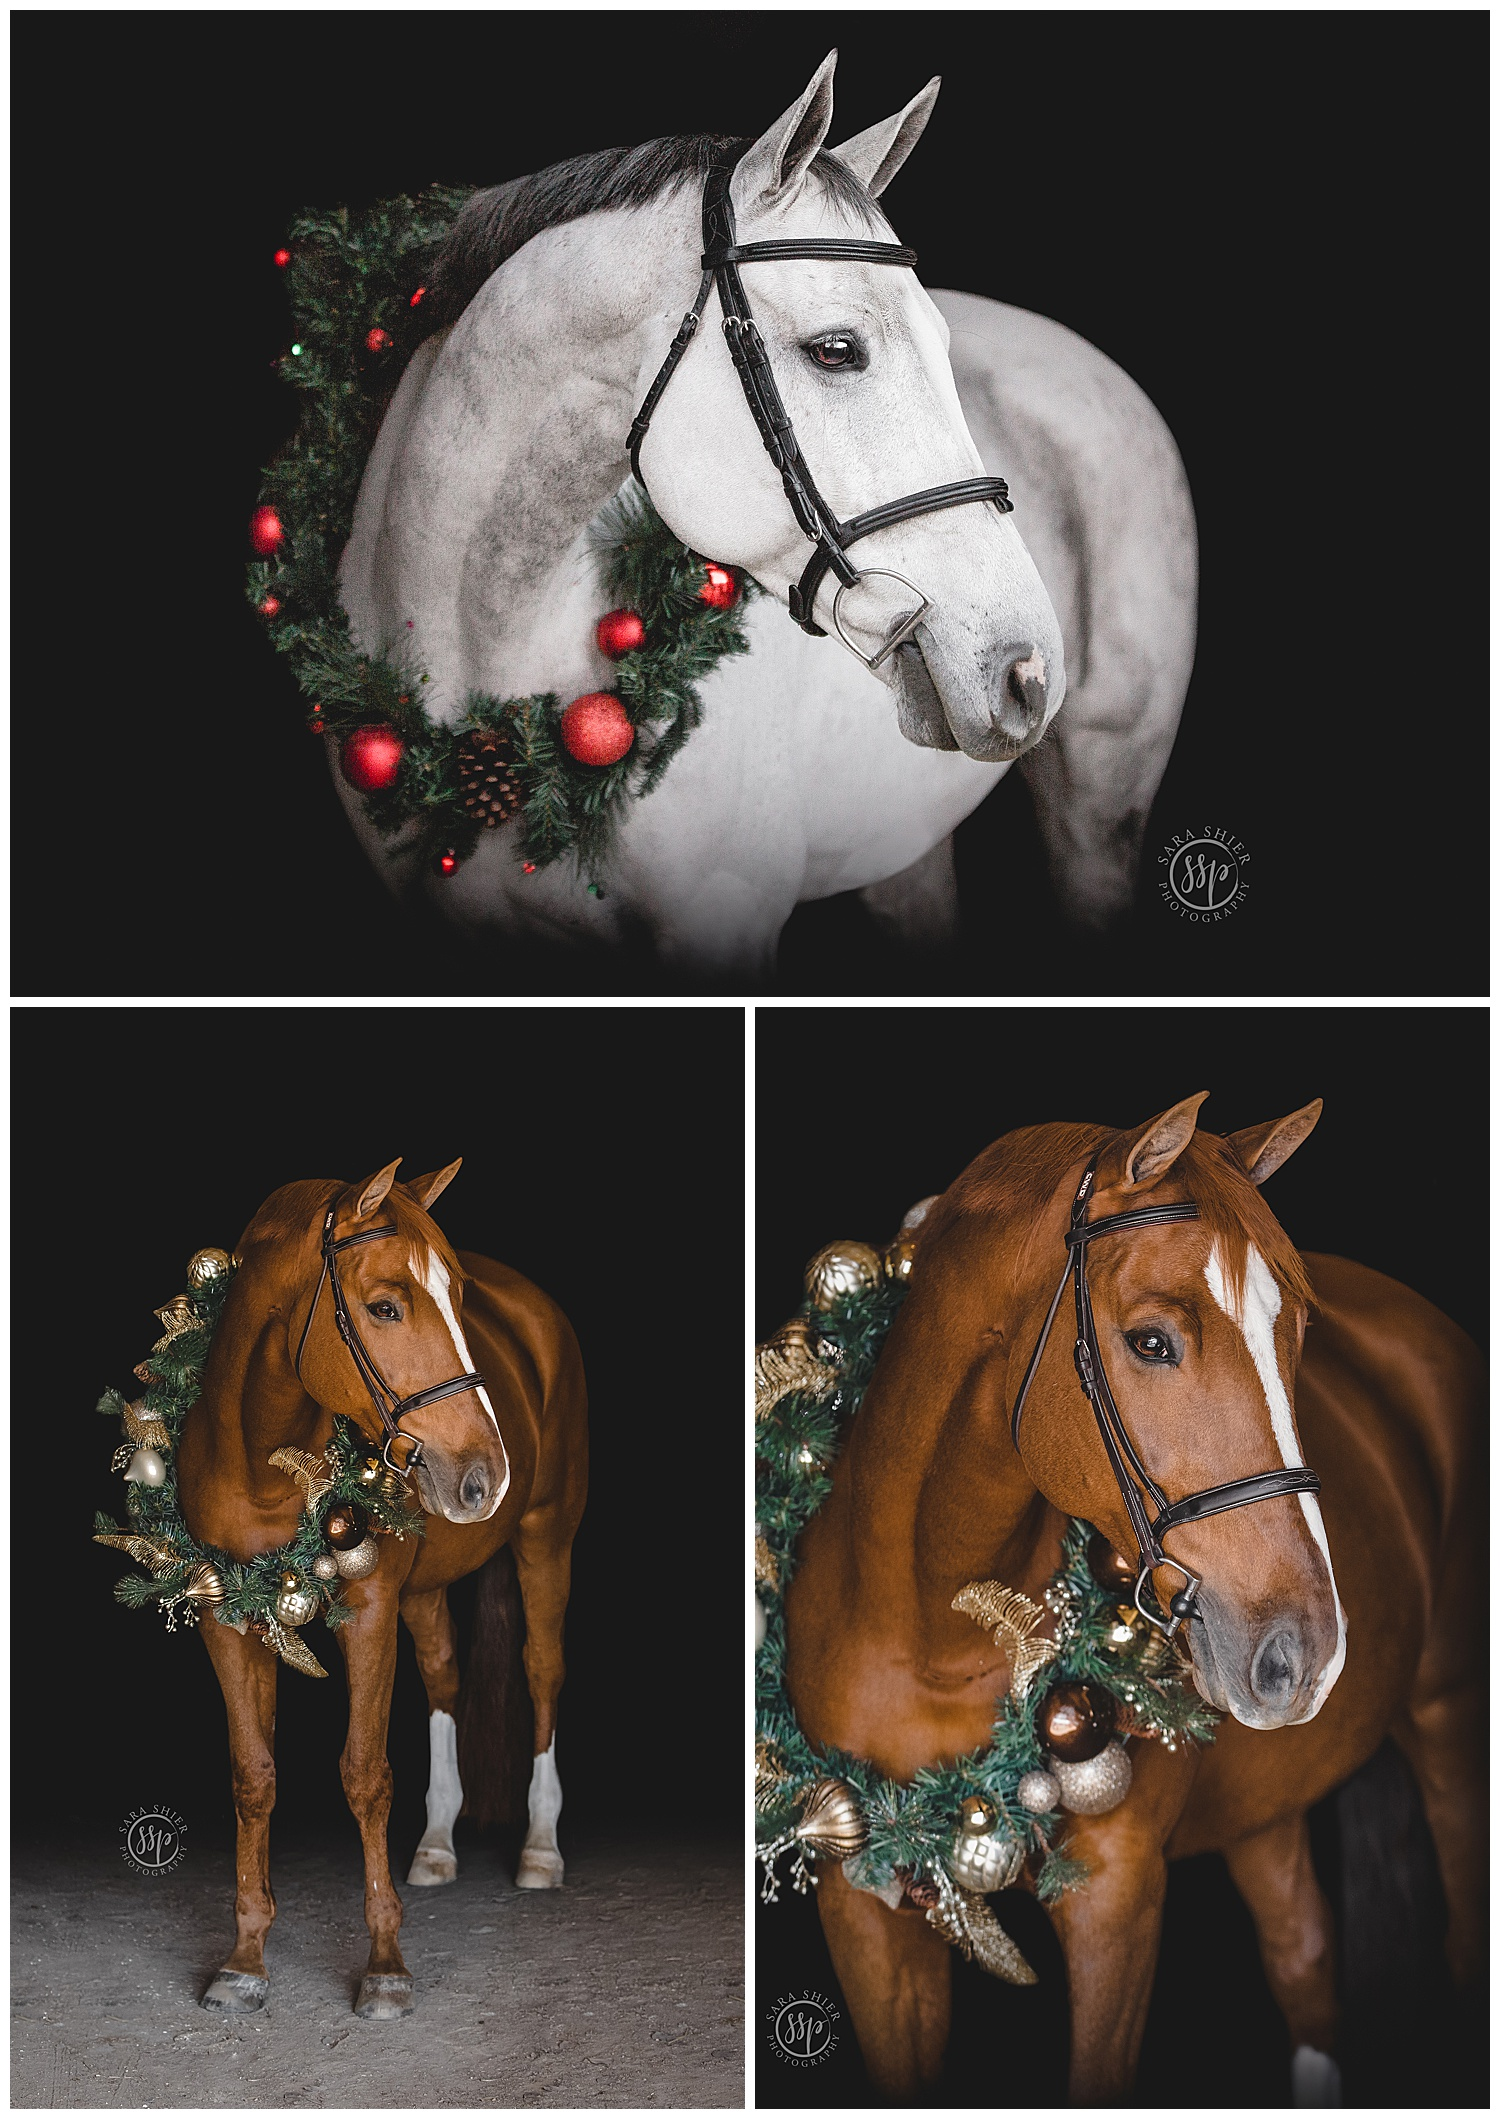 Black Background Horse Rider Equine Photographer Southern California Sara Shier Photography SoCal Equestrian Cowgirl_0156.jpg